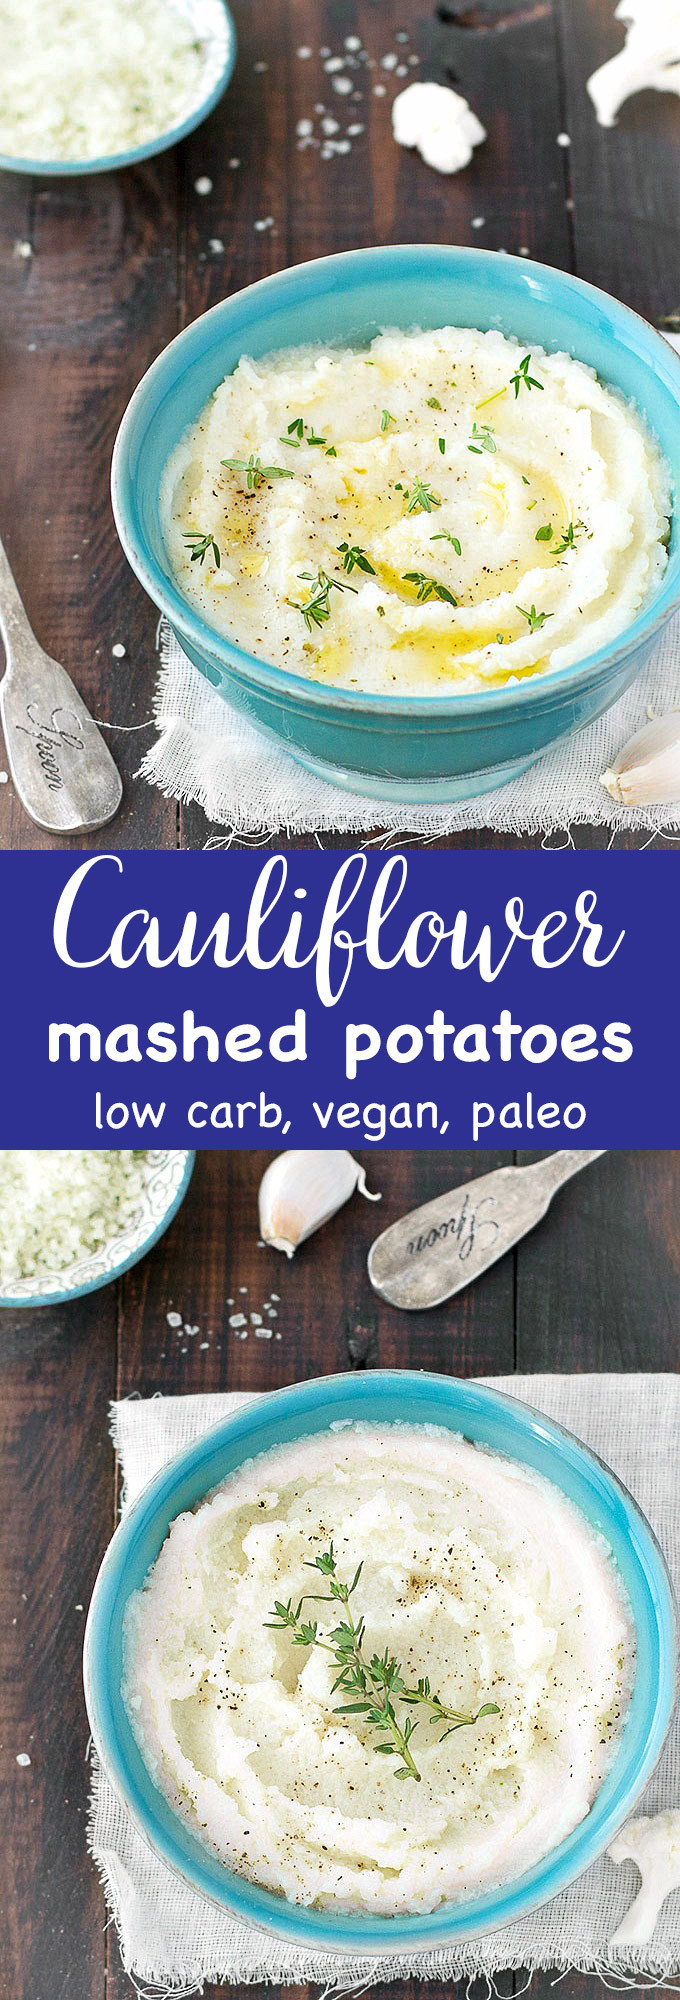 Are Mashed Potatoes Healthy  Healthy Cauliflower Mashed Potatoes As Easy As Apple Pie